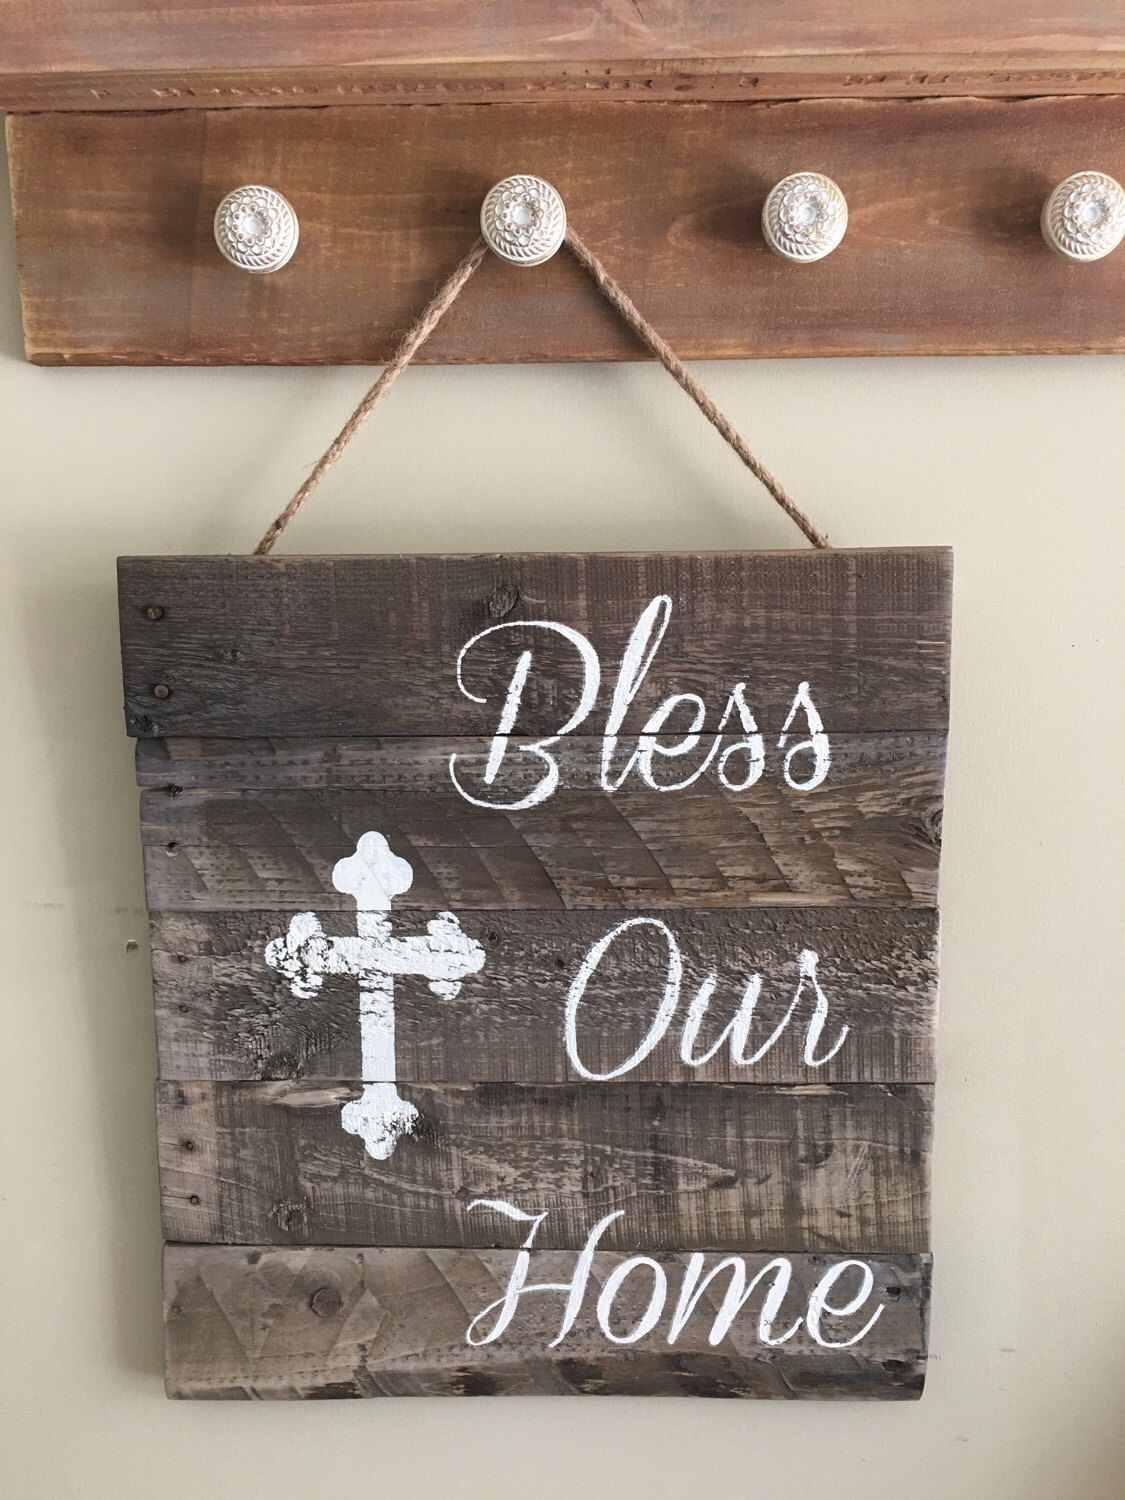 Bless our home tistic sign/wooden sign/indoor outdoor wooden sign/cross sign/rustic decor